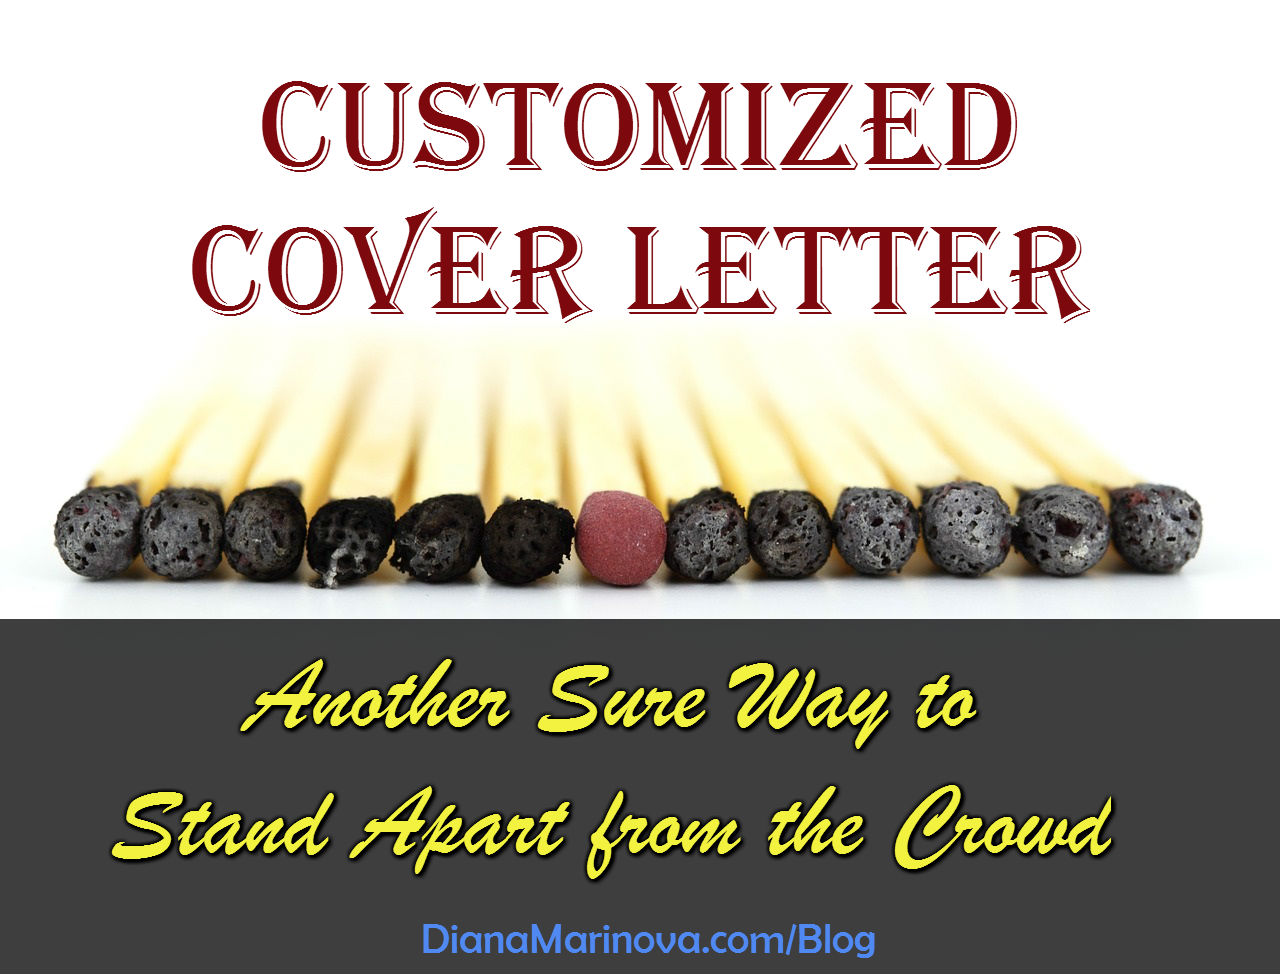 Customized cover letter a sure way to stand apart from the crowd customized cover letter another sure way to stand apart from the crowd madrichimfo Images